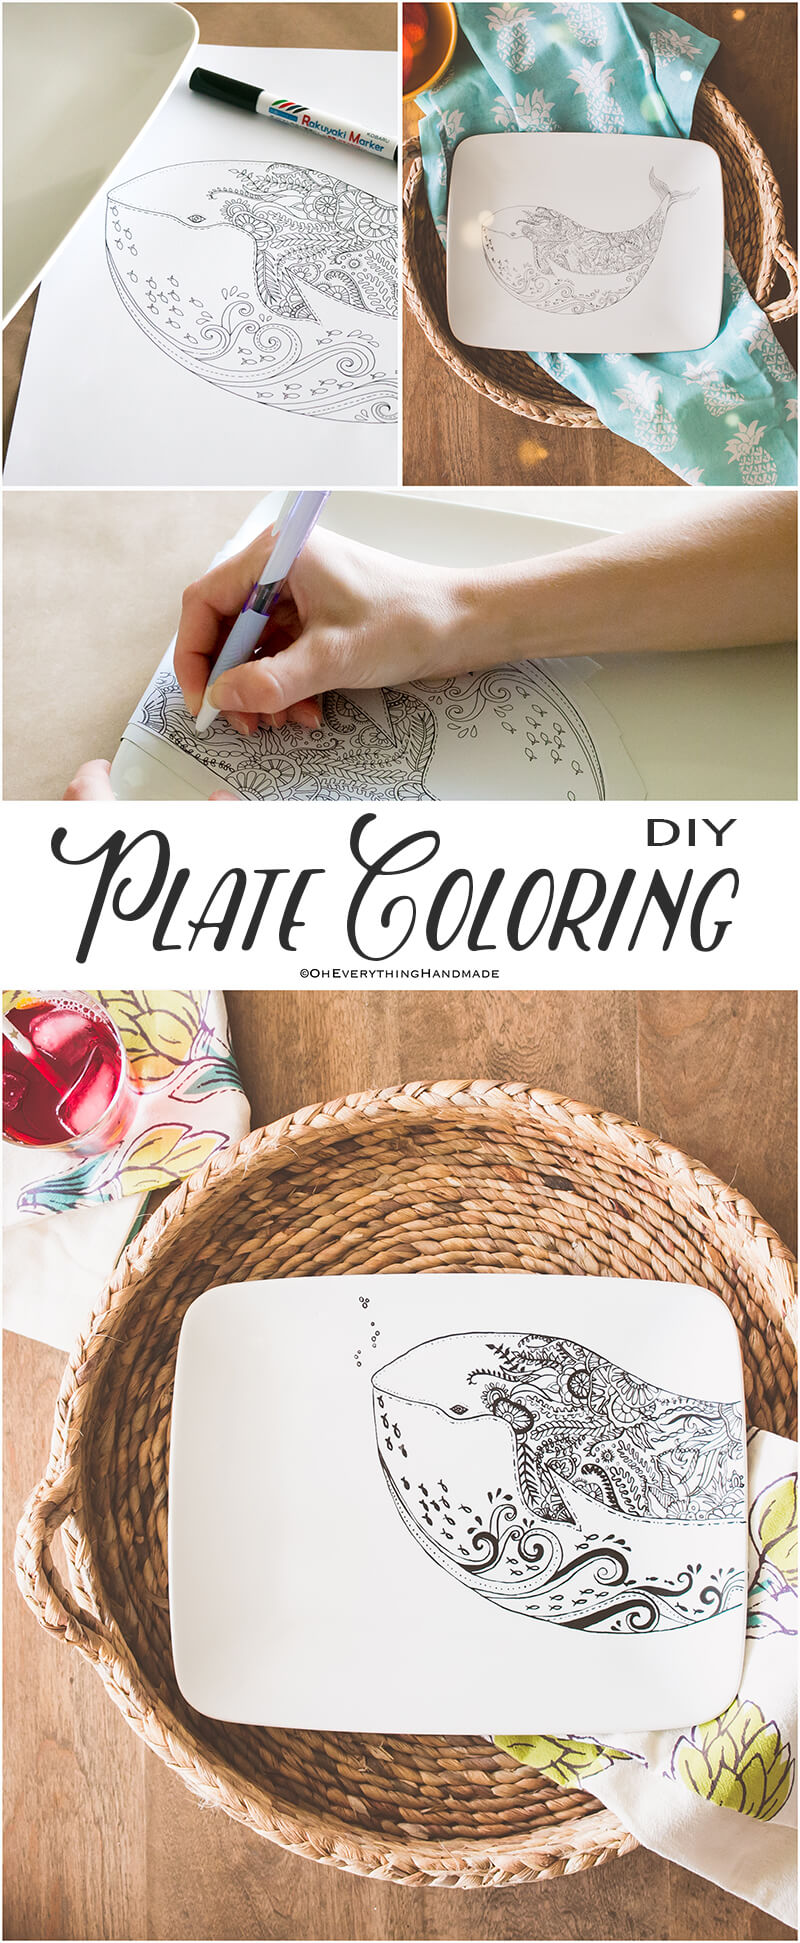 Plate coloring by OEH-Pinterest